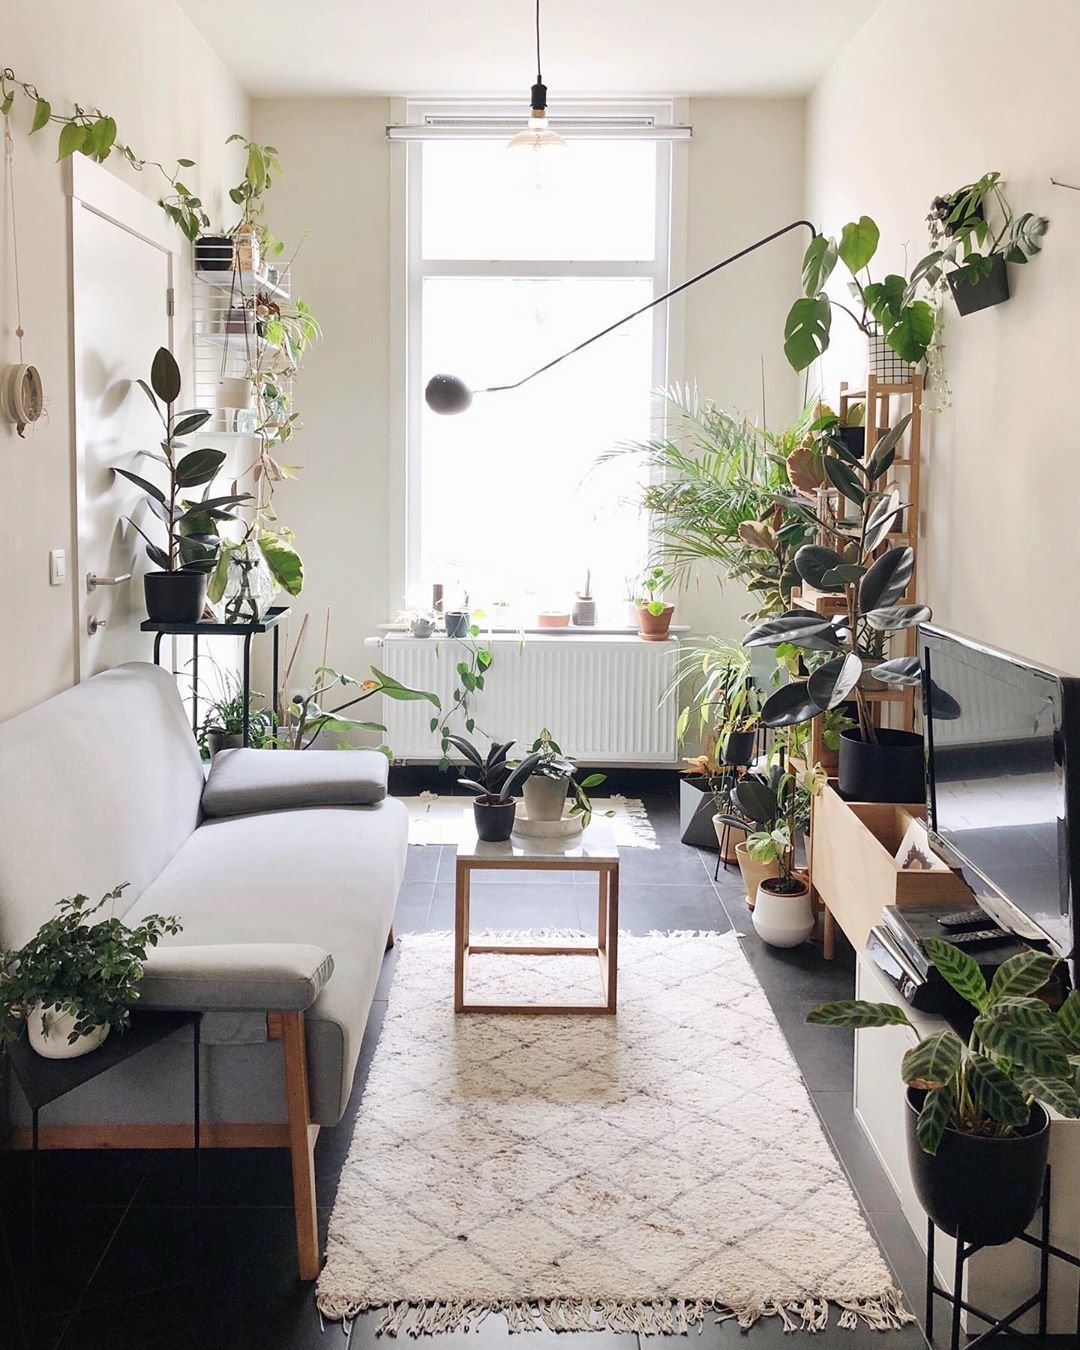 Living Room, Sofa, Coffee Tables, Dark Hardwood Floor, and Wall Lighting Nelson De Coninck's space is an airy, art-filled sanctuary.  Best Photos from 10 Plant-Filled Abodes You Should Follow on Instagram Right Now